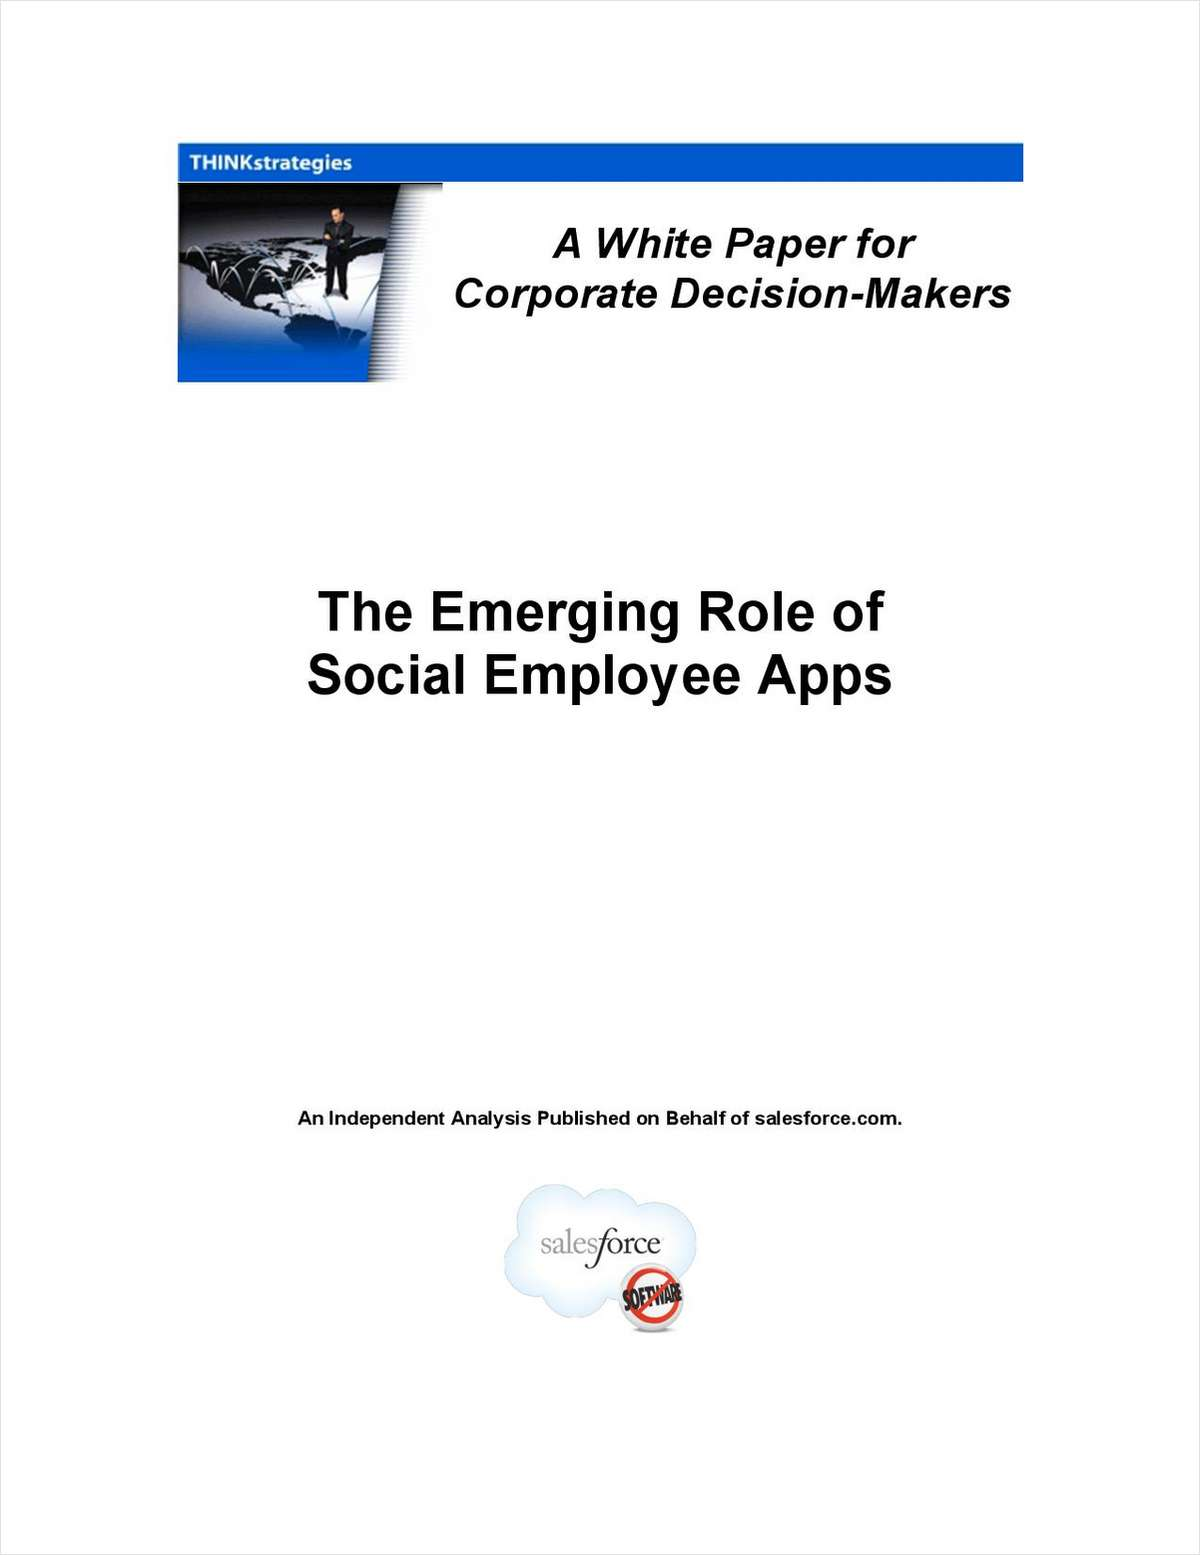 The Emerging Role of Social Employee Apps